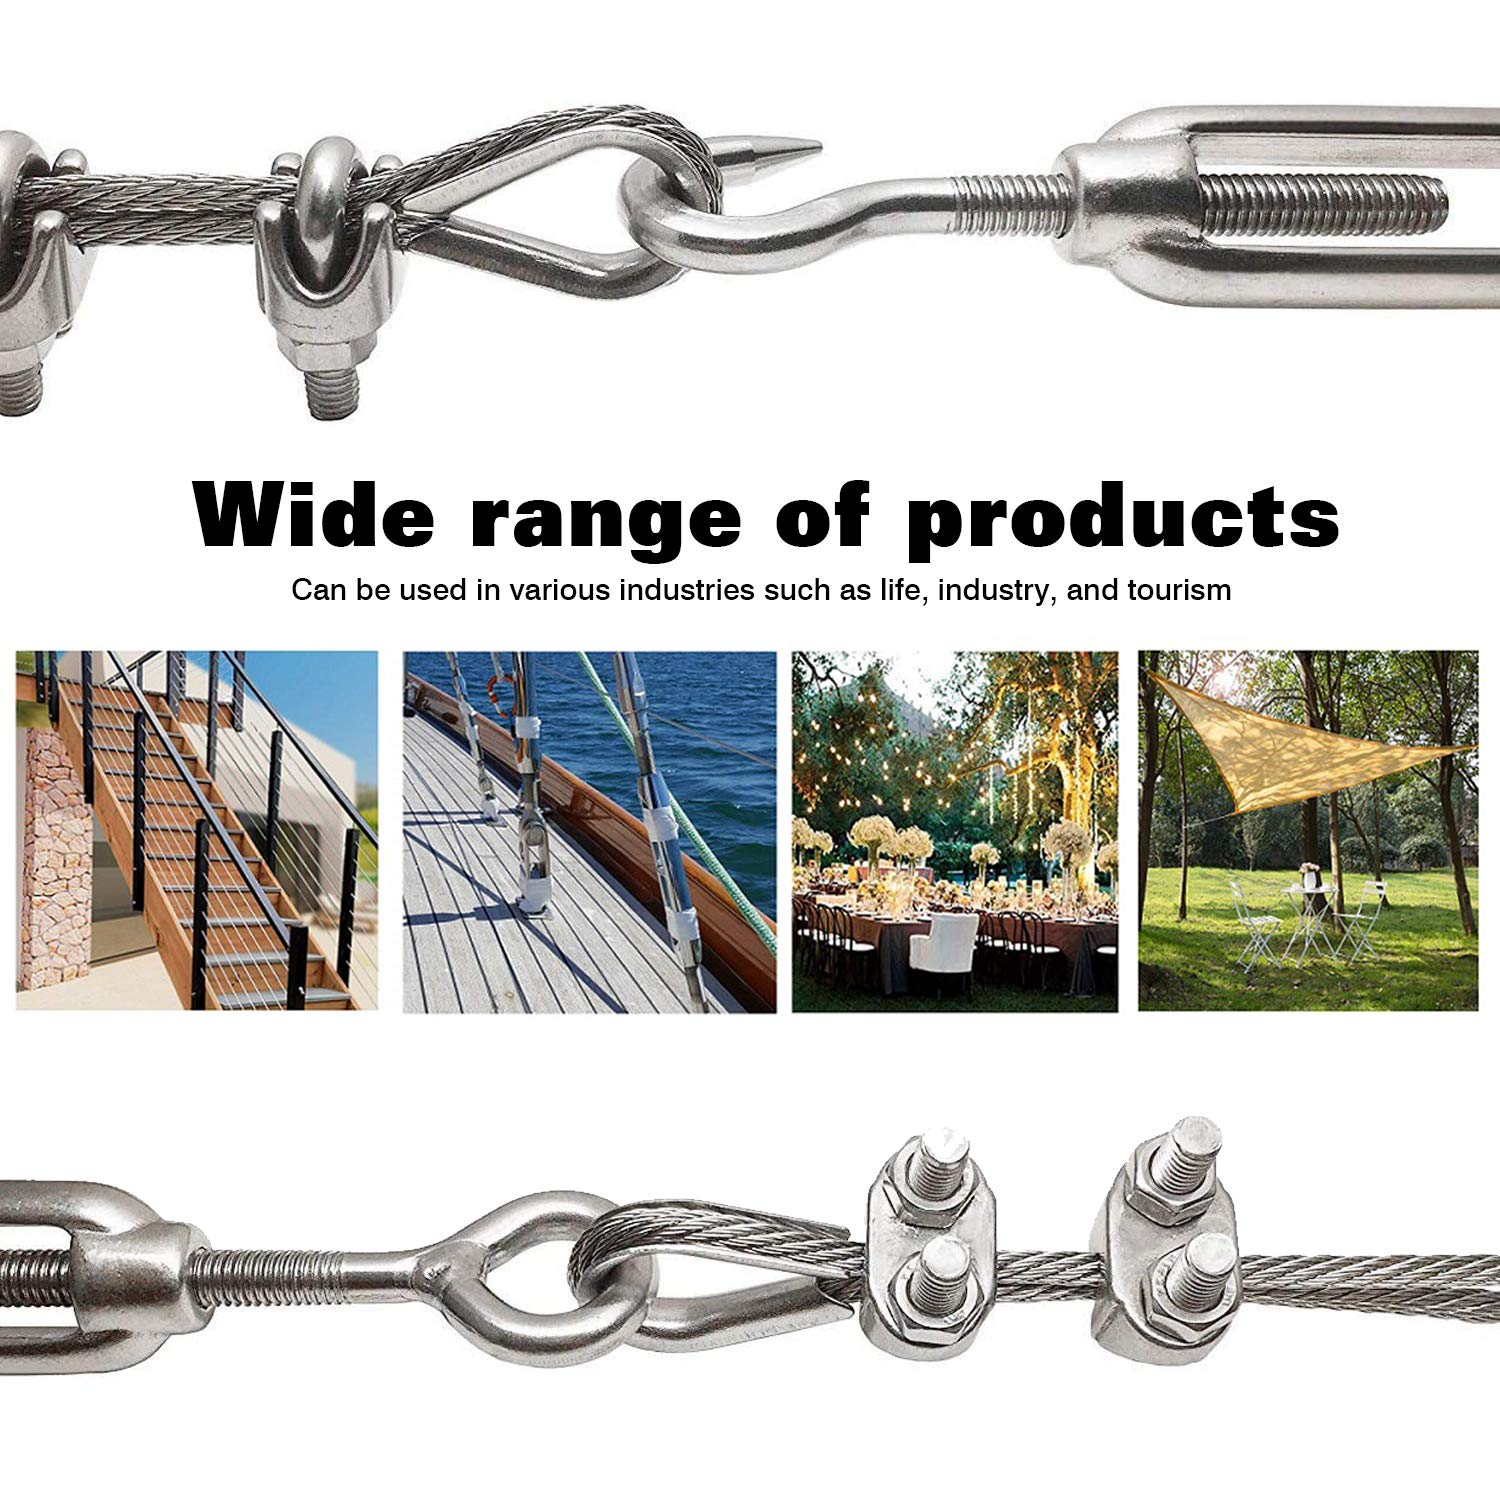 304 Stainless Steel Hook and Eye Wire Rope Tension Pack of 2 Adjustable Cable Rope Tensioner WiMas M10 Turnbuckle